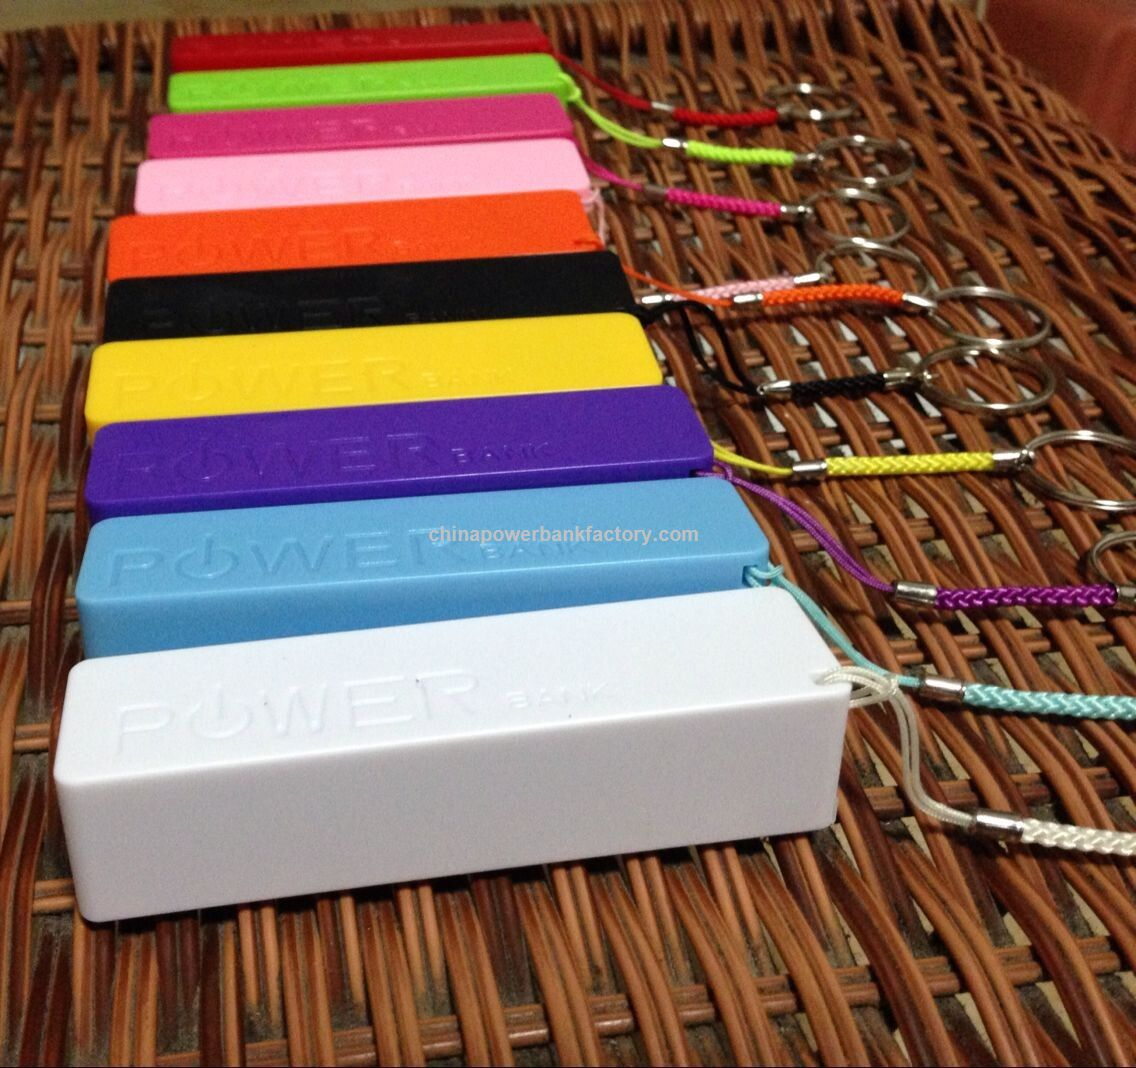 Wholesales 2600mAh Portable Mobile Power Bank for iPhone Android Phone